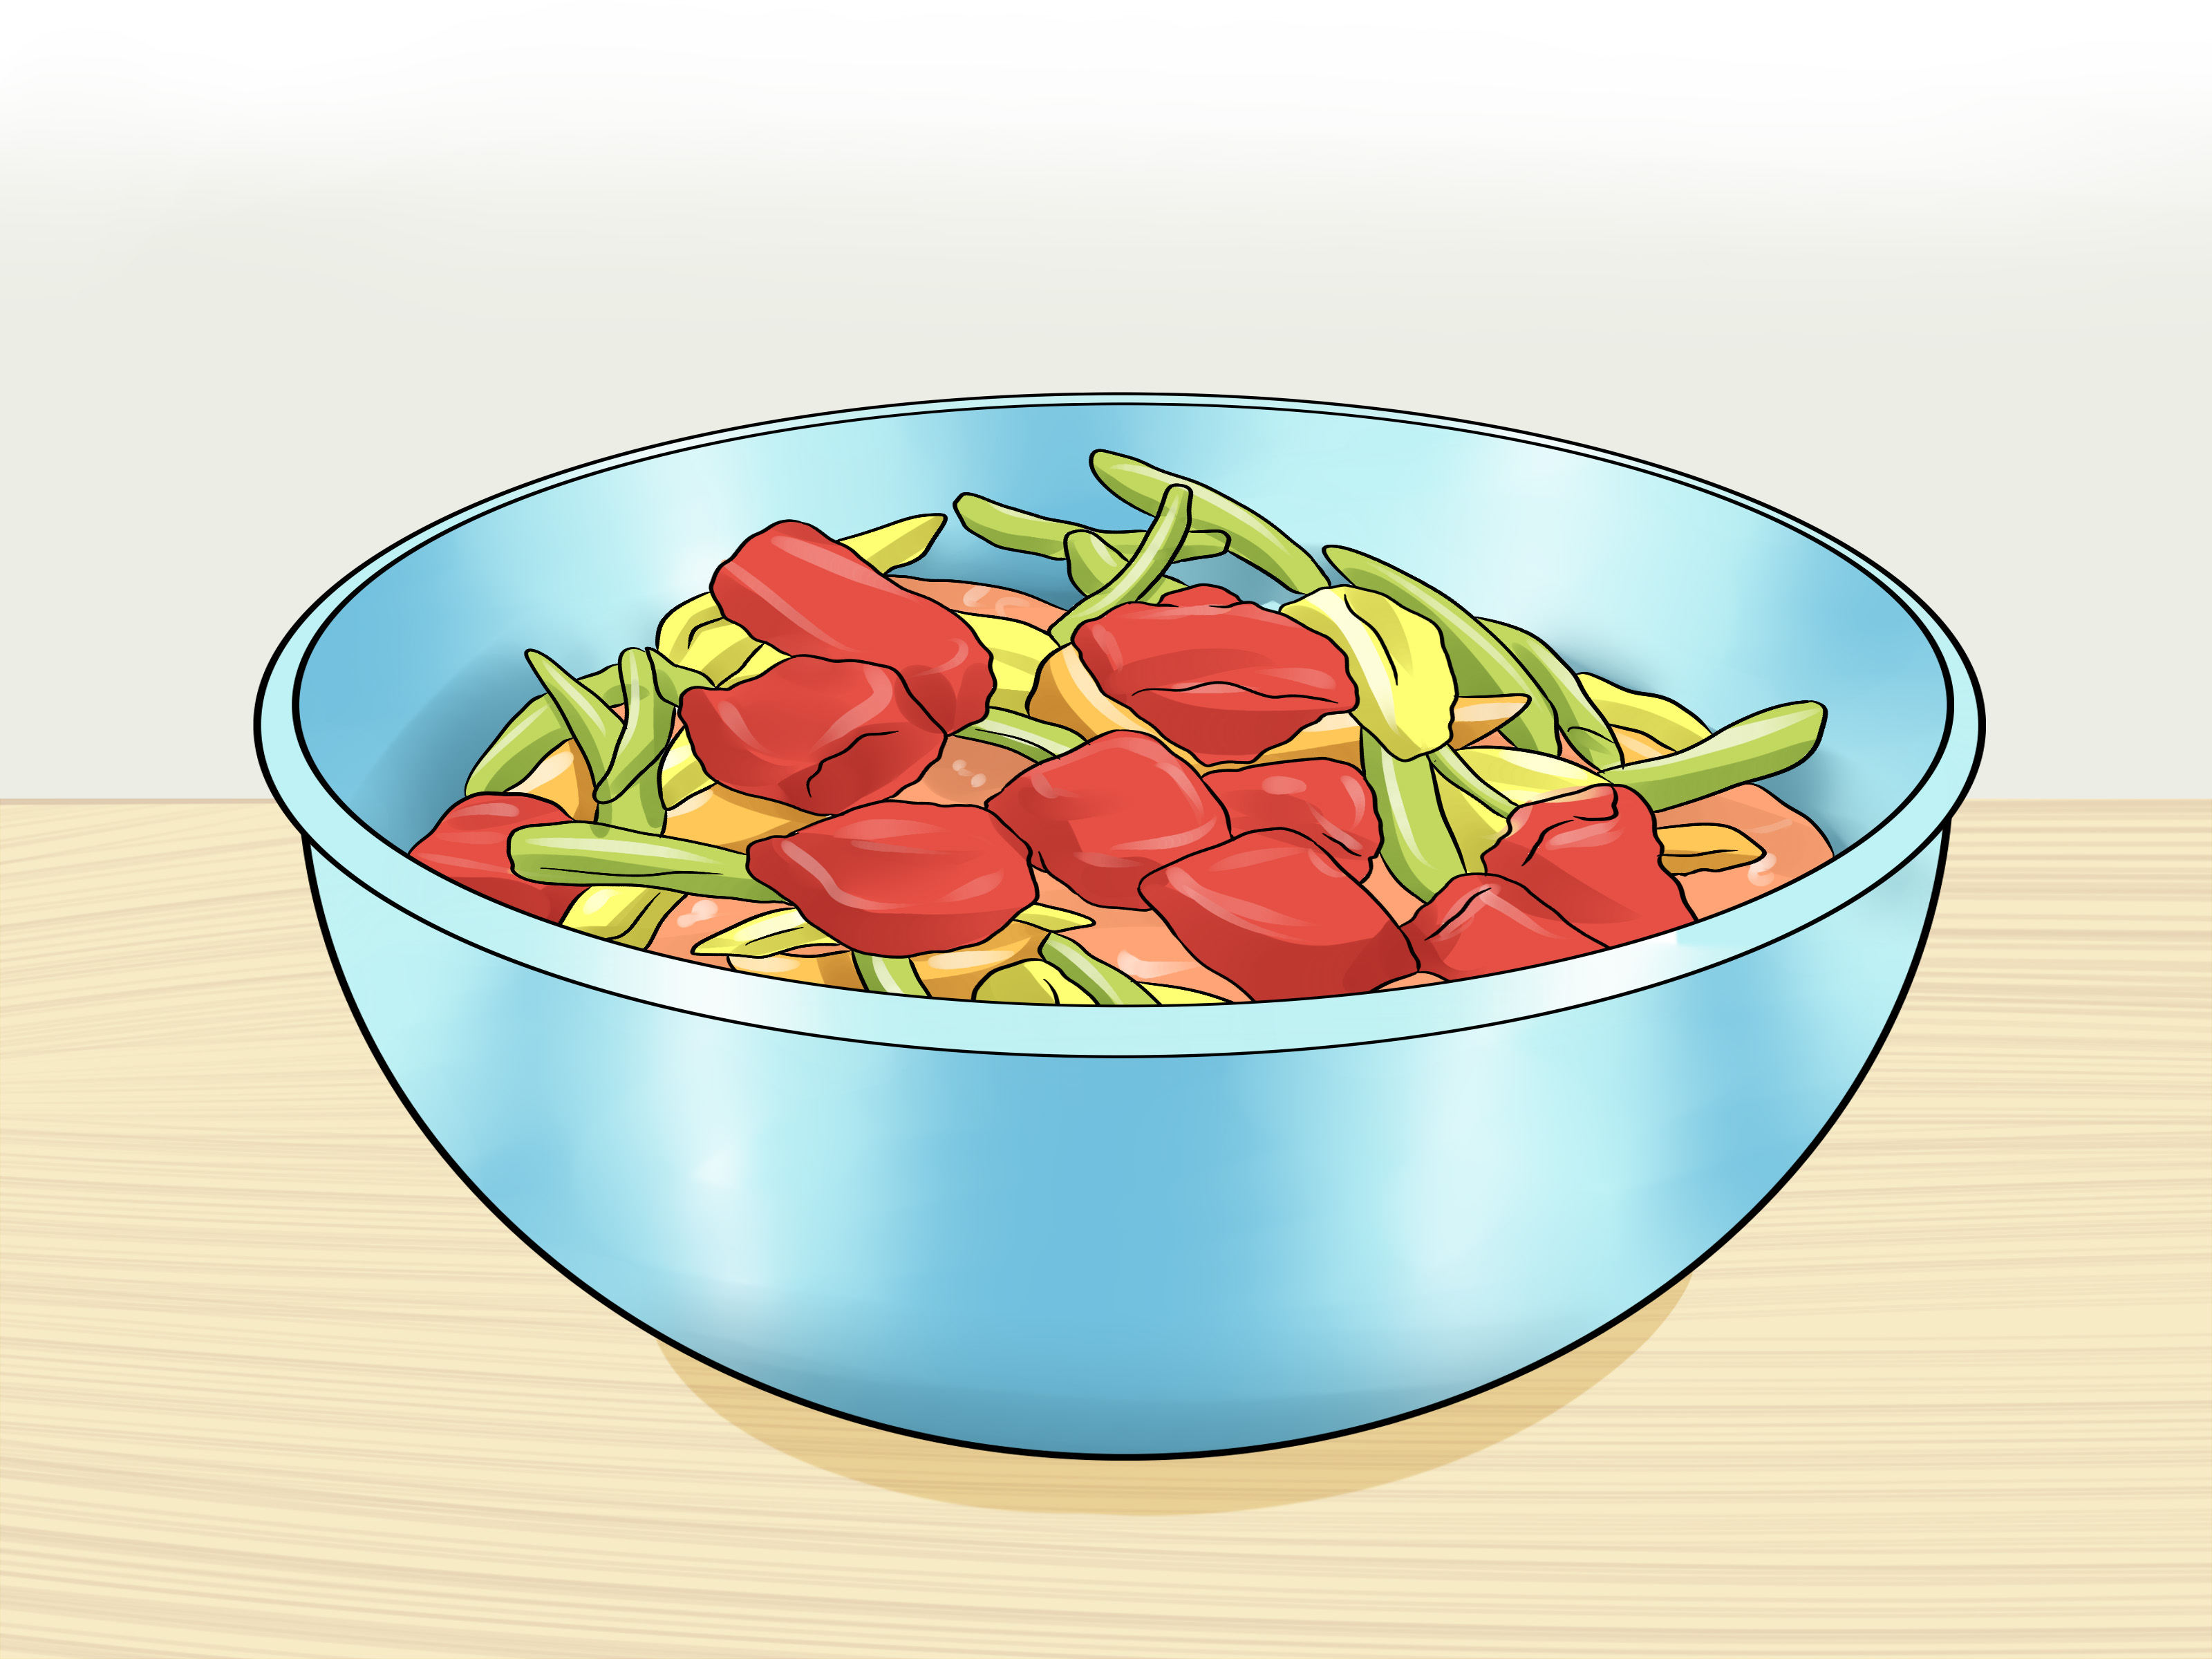 How To Season A Wok How To Season A Wok With Pictures Wikihow